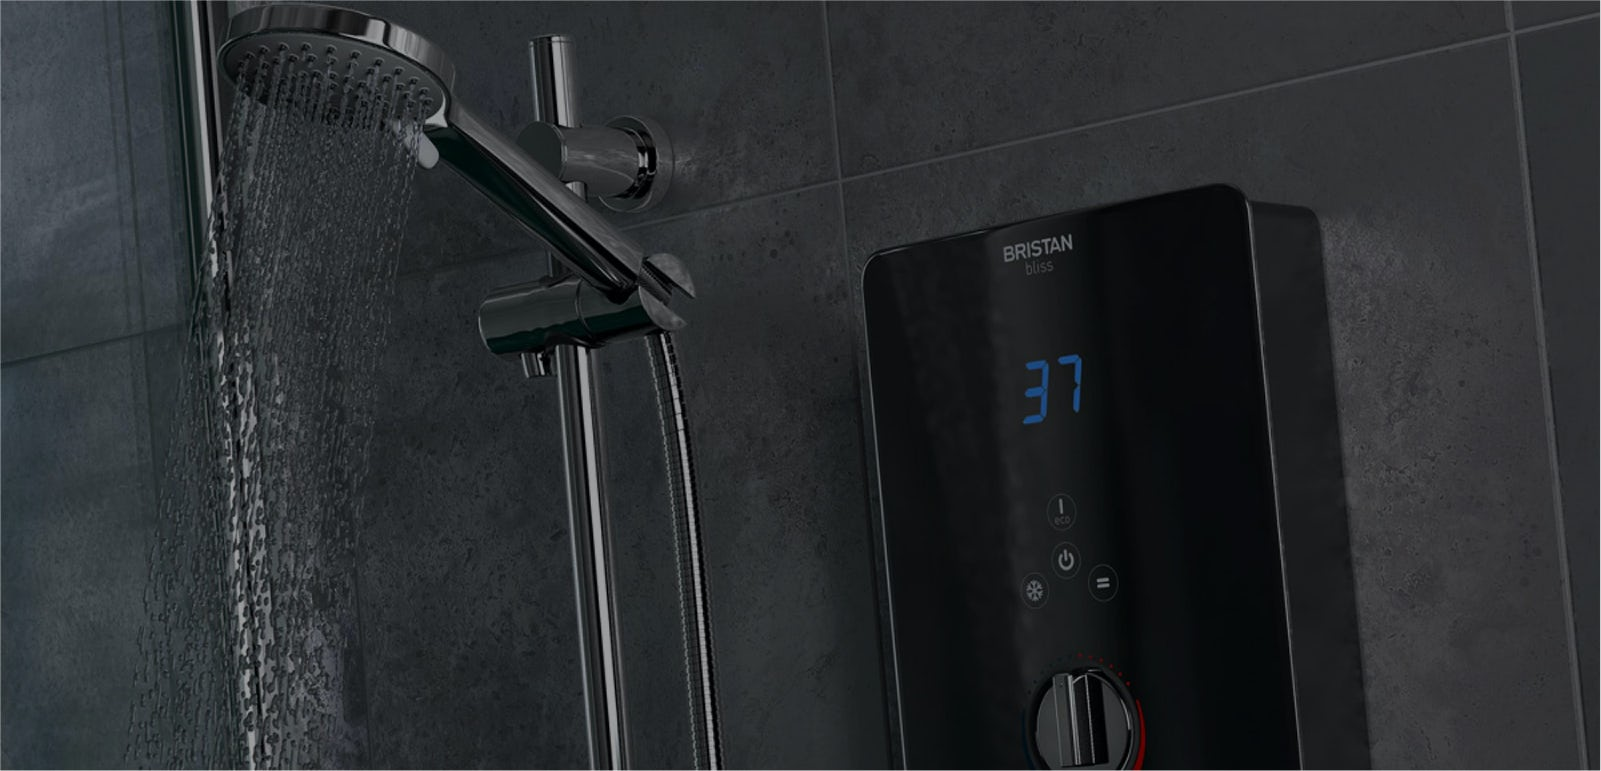 Ask the experts: What is the best type of tradesperson for fitting an electric shower?